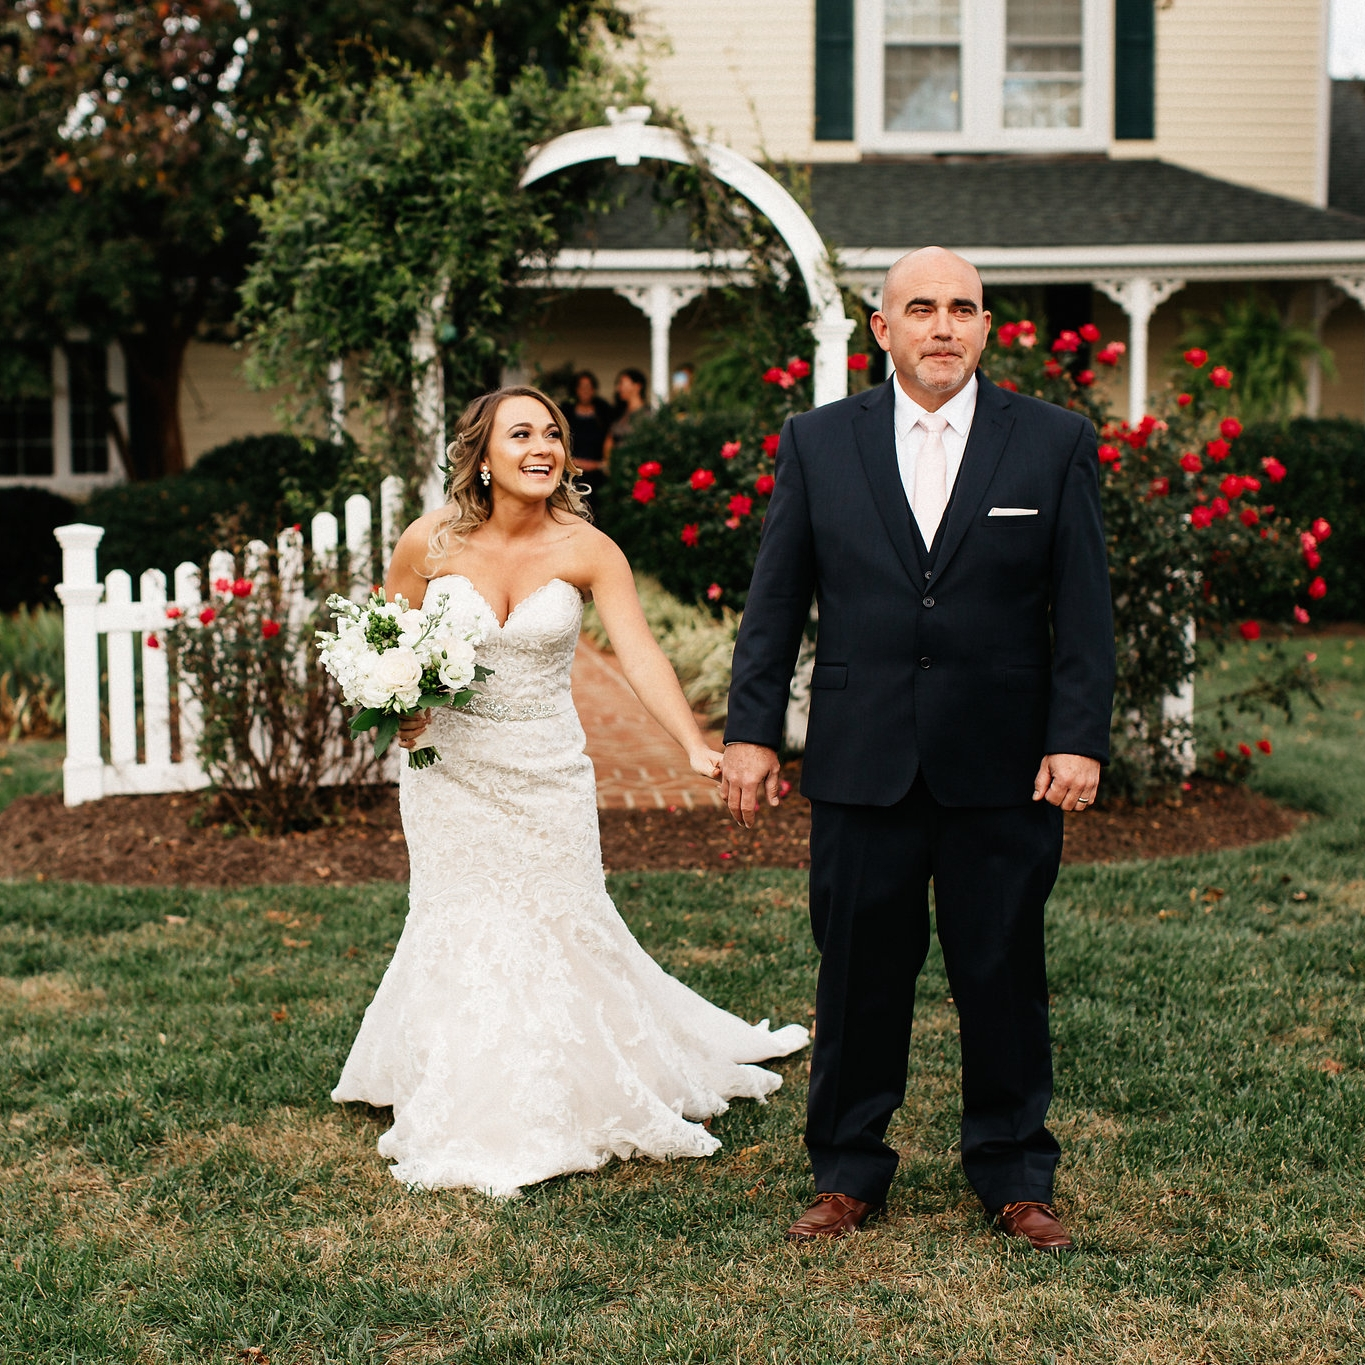 Ashley&NathanMarried2017-11-10at19.26.47PM134.jpg